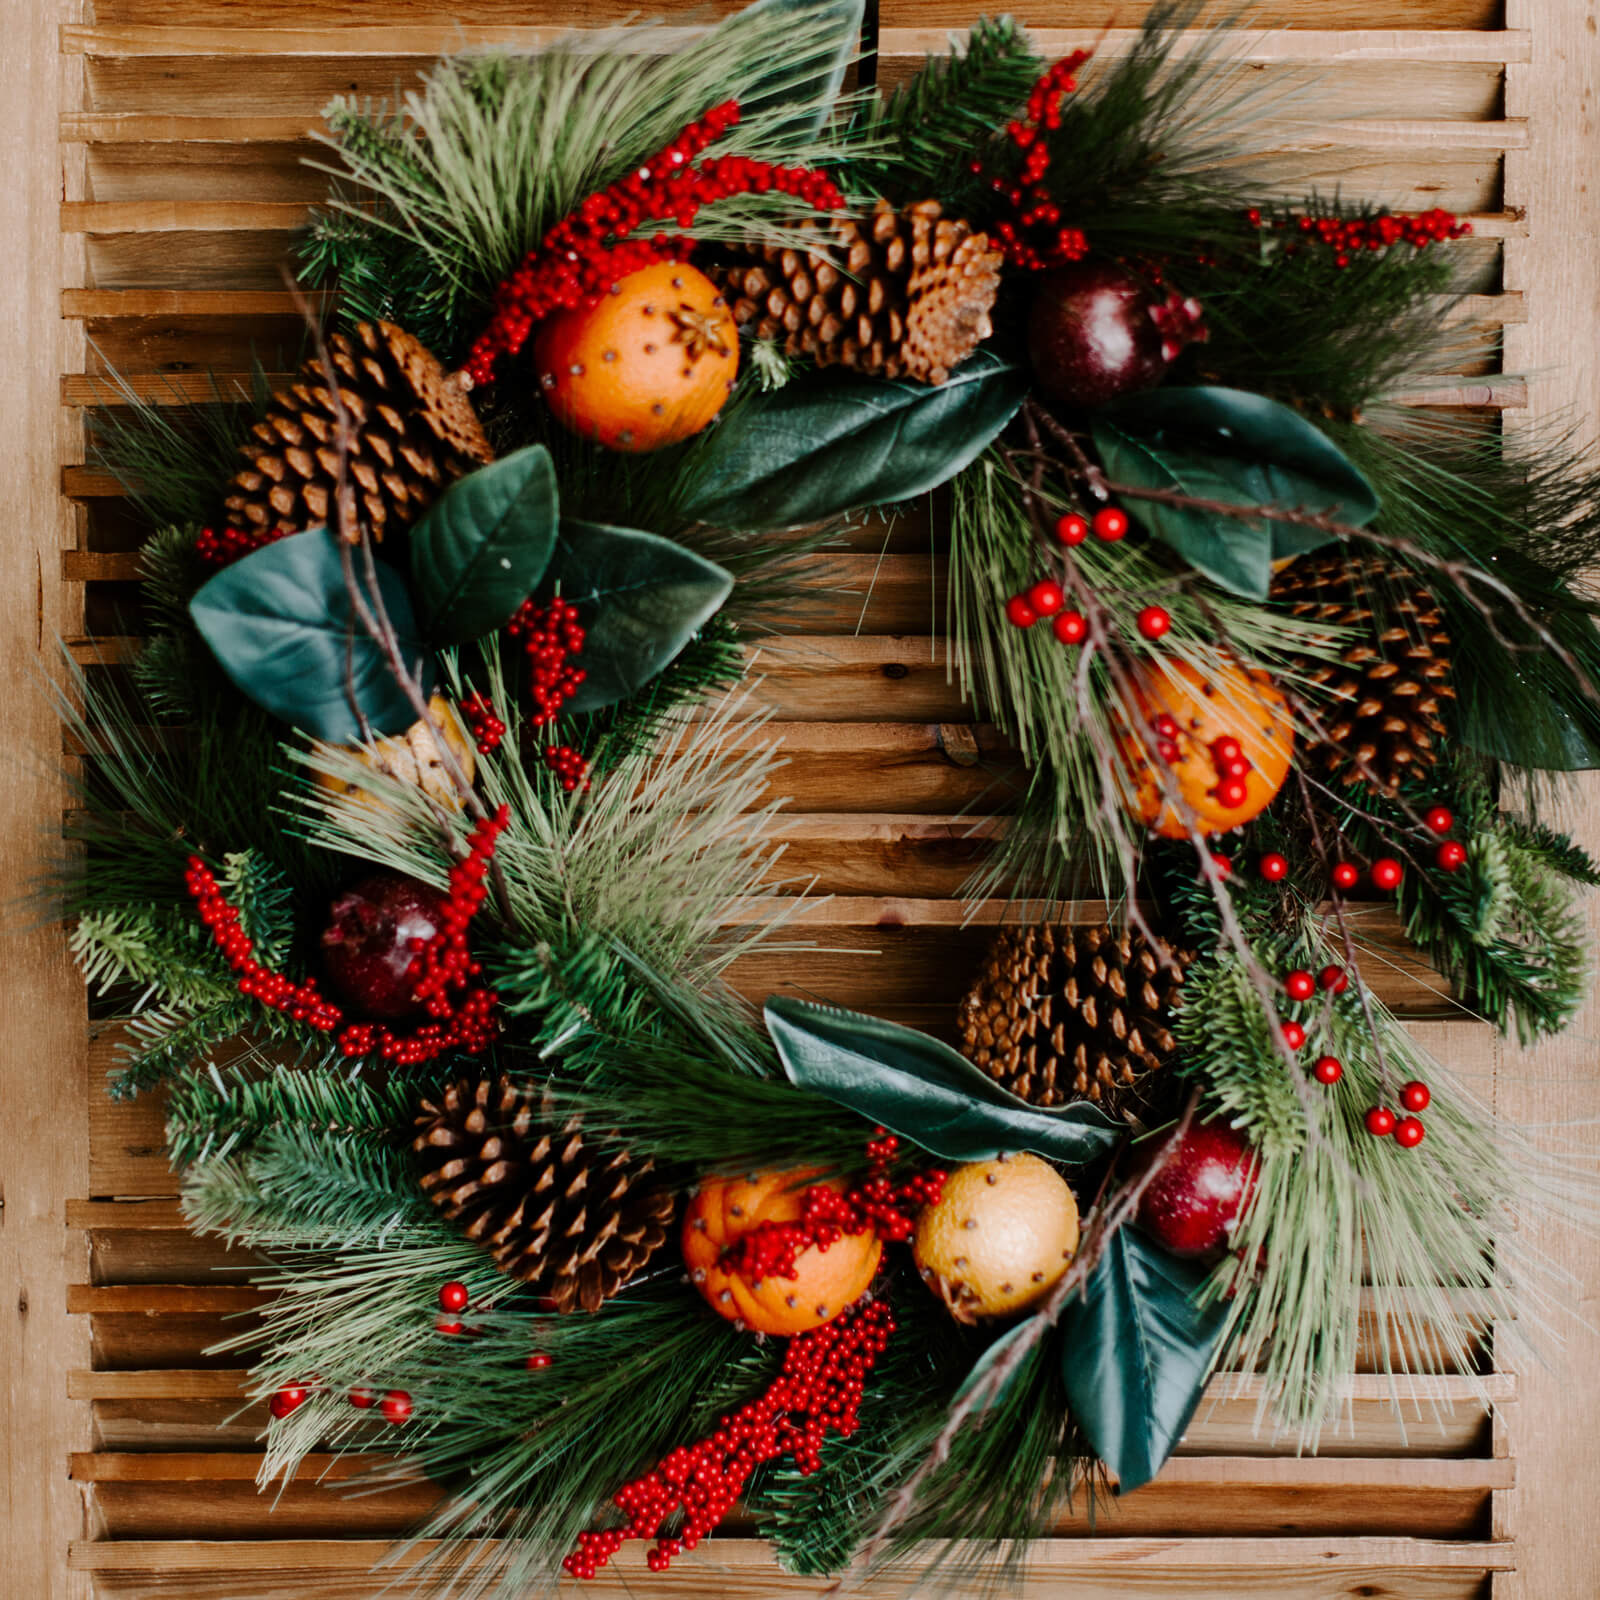 Lush 24 inch diameter wreath with faux magnolia leaves, pine needles, red berry stems, twigs and clover oranges and pomegranates, hung on the front door for Winter decorating